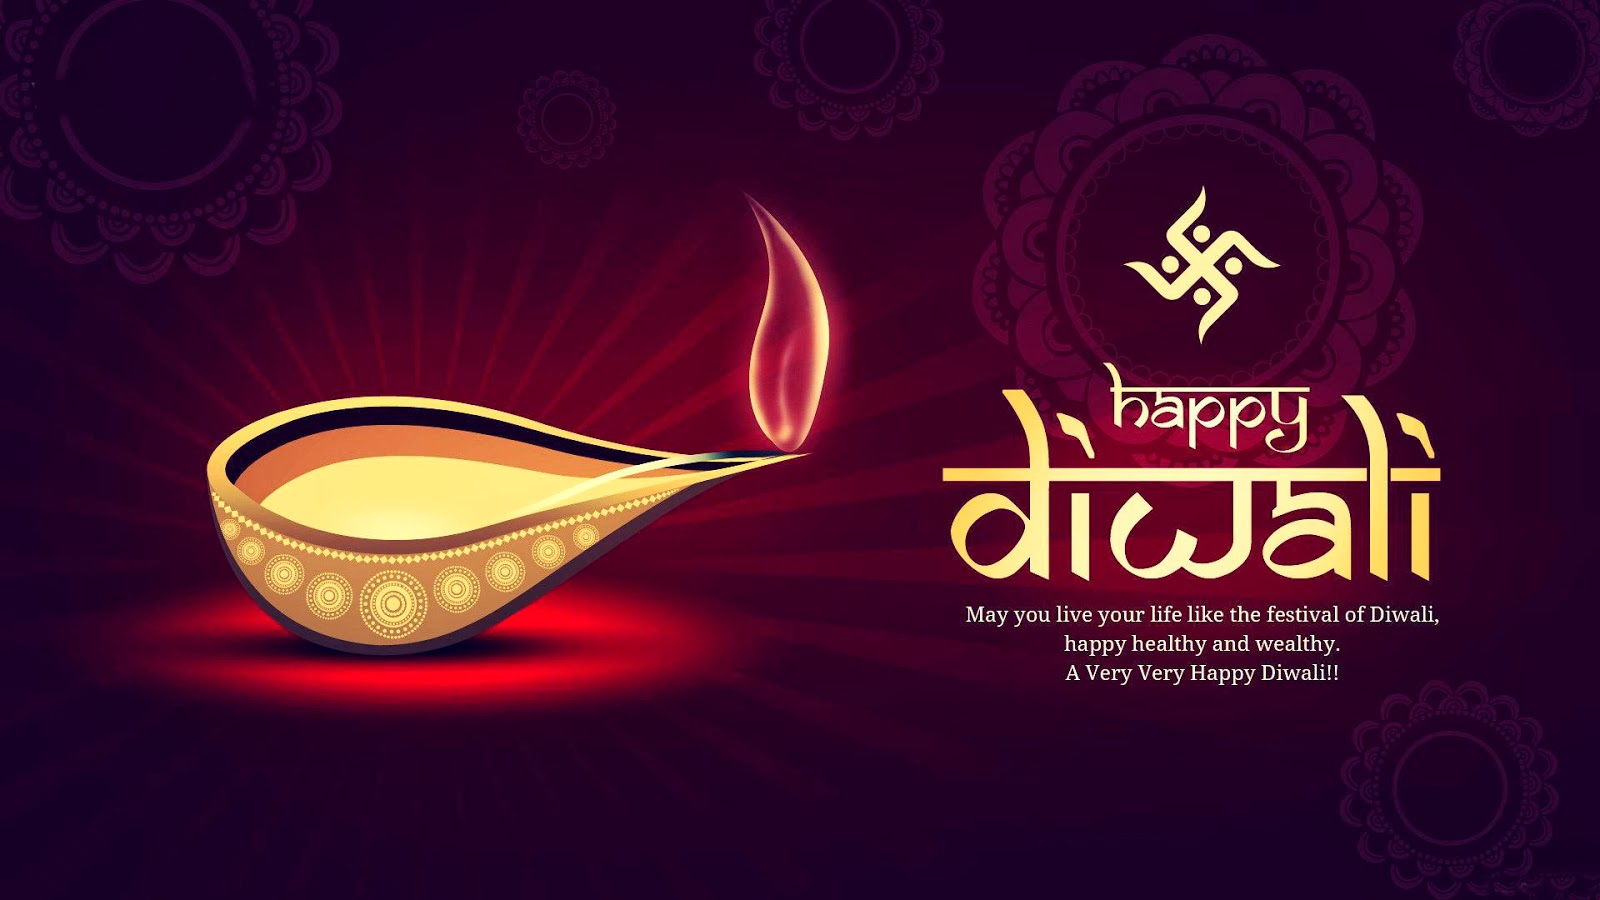 Free Diwali Greeting Cards Diwali Depict Messages 2015 Full Hd